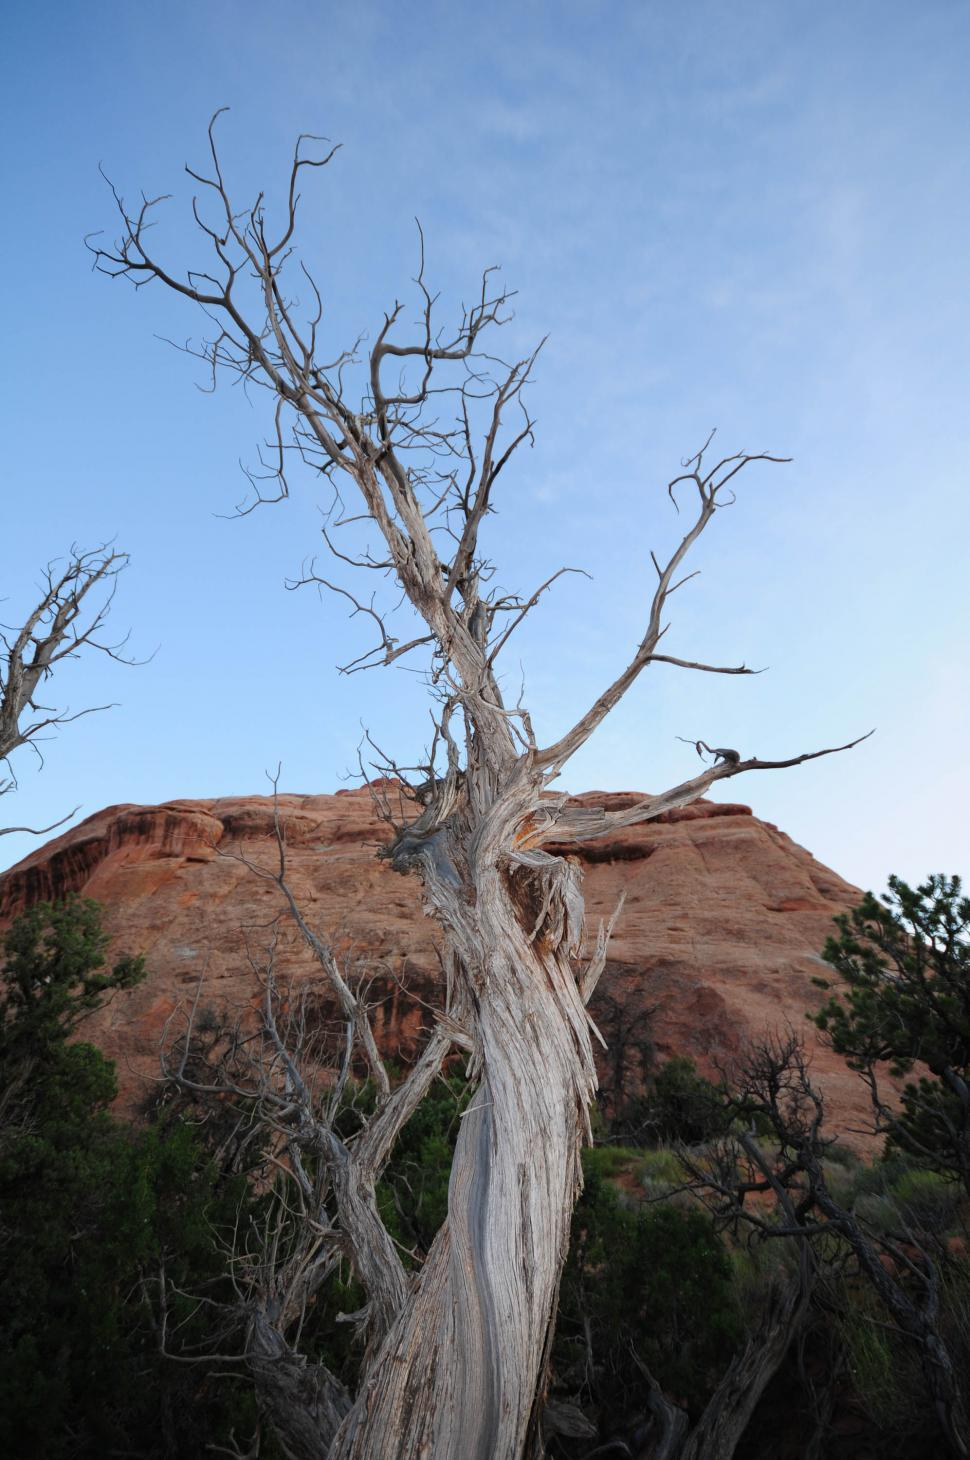 Download Free Stock Photo of Twisted tree